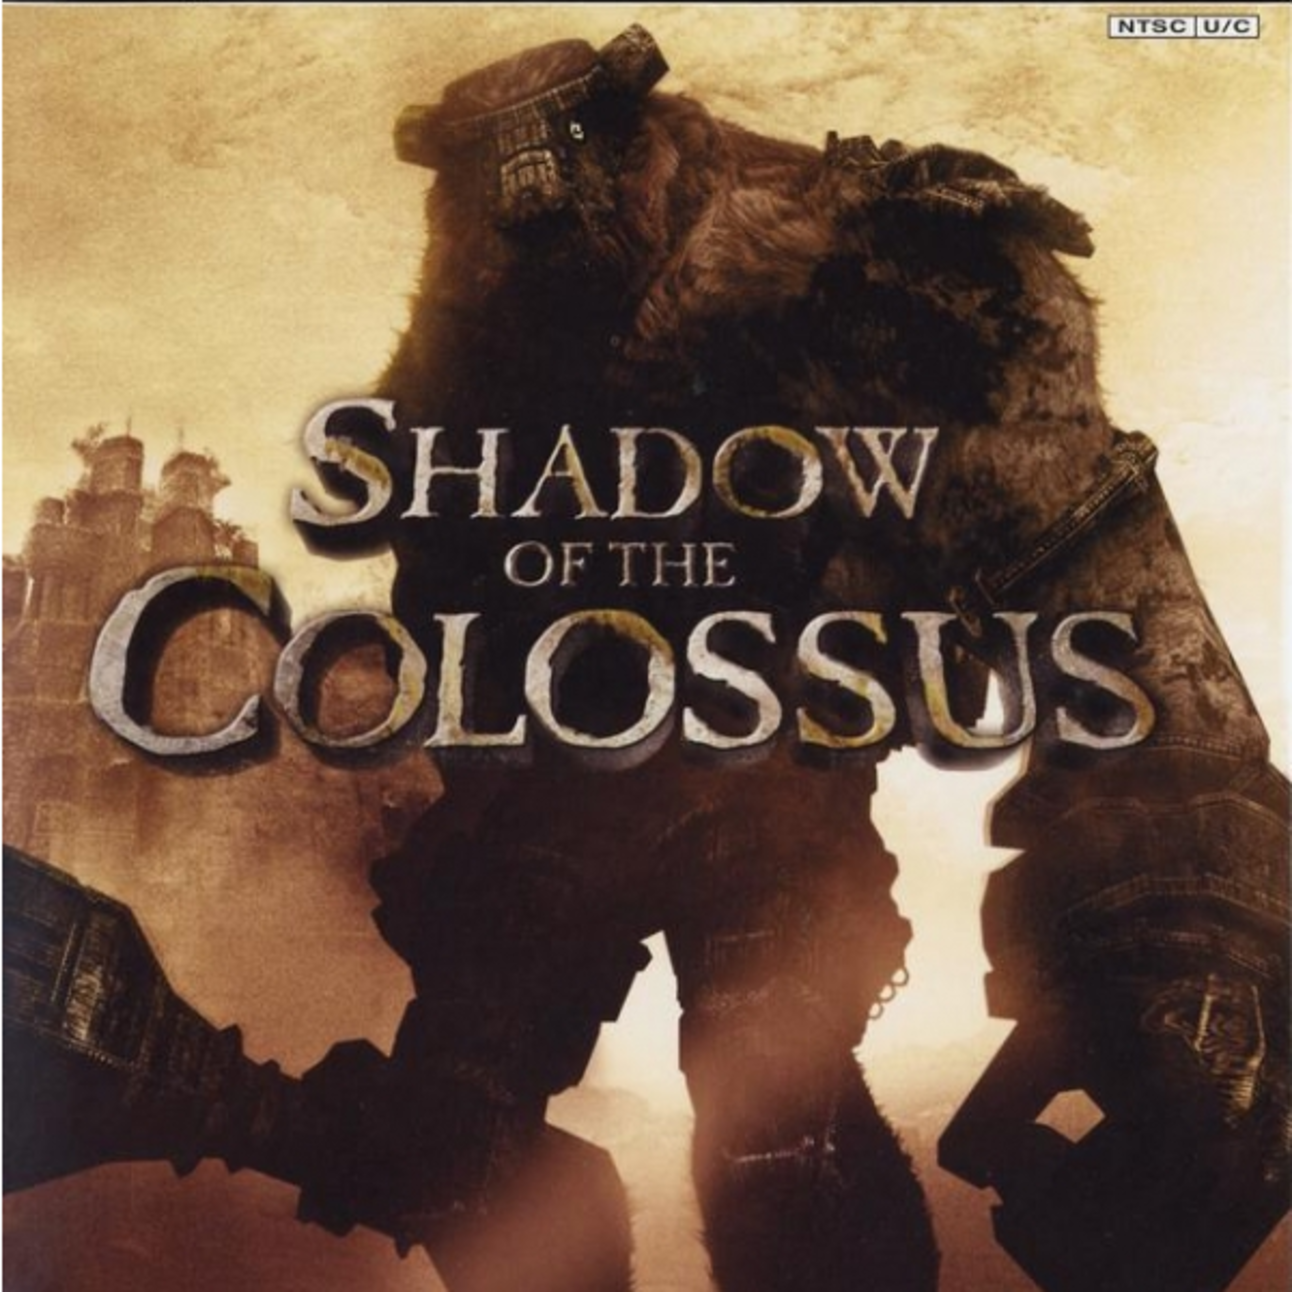 shadow-of-the-colossus-cover.png